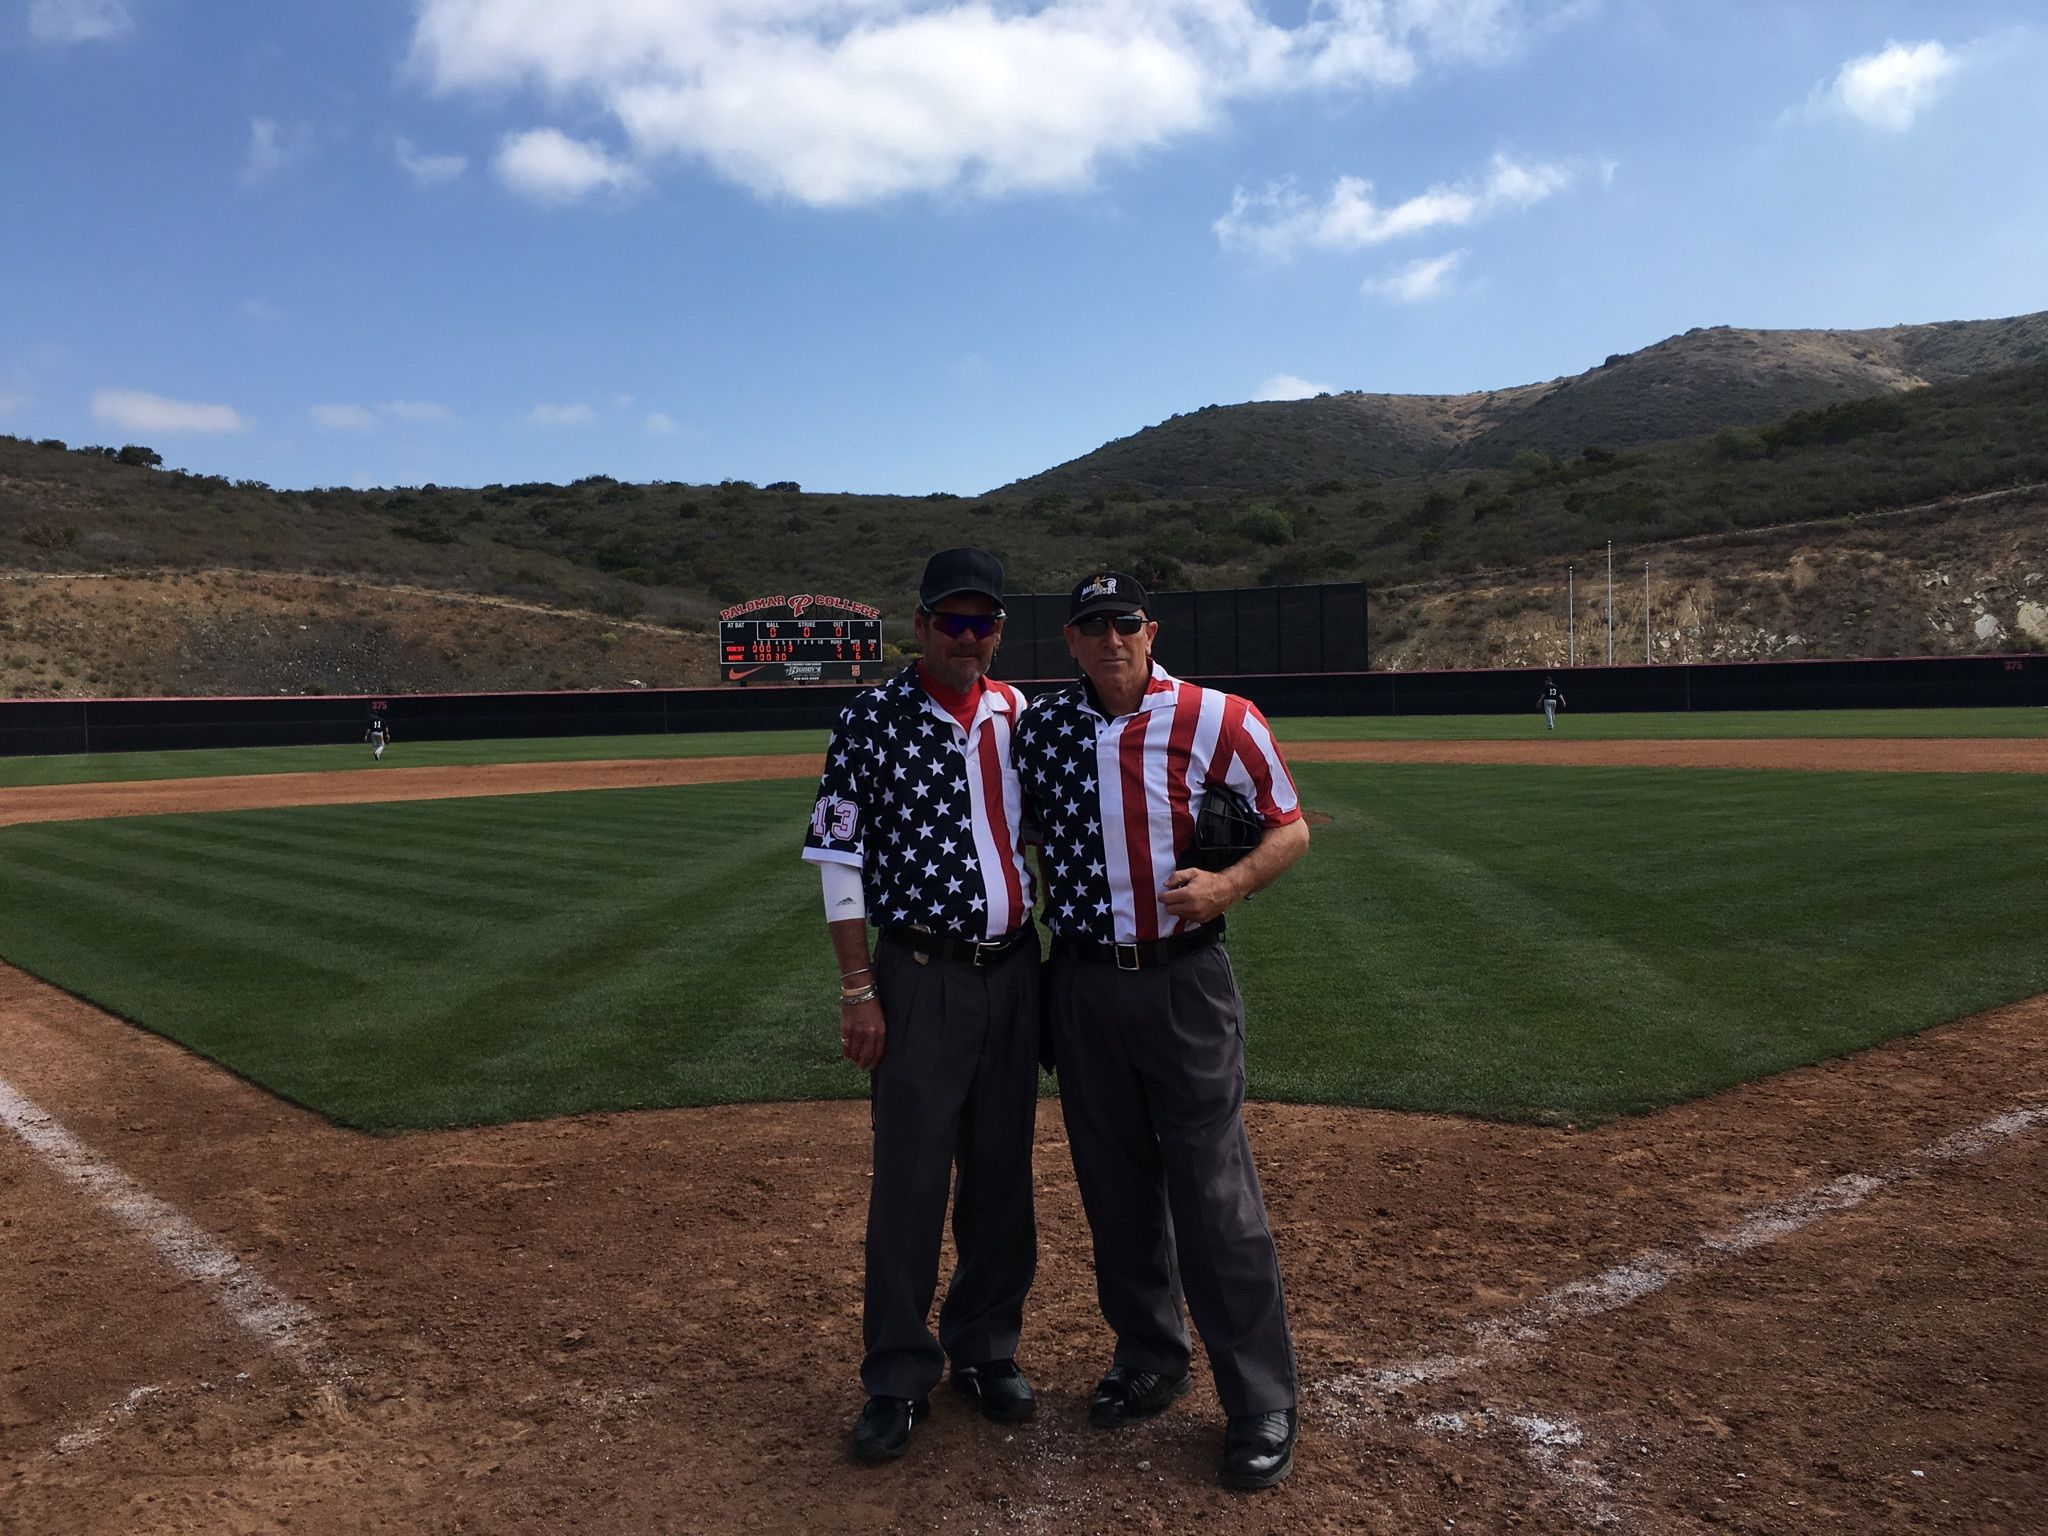 2018 Umpires at Palomar